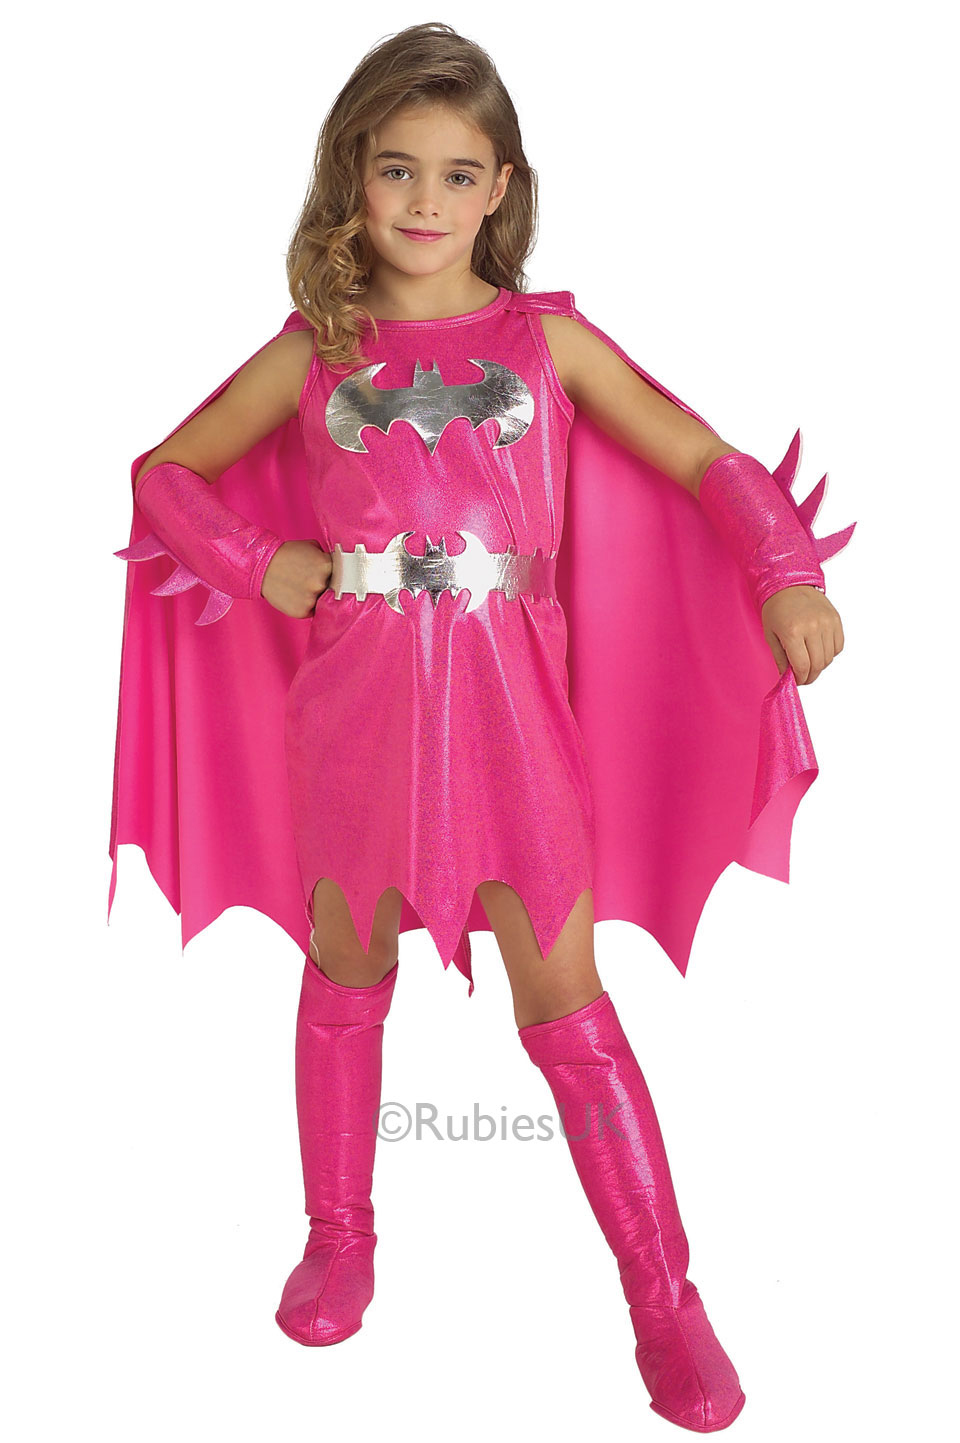 Pink Batgirl Costume Fancy Dress Costumes & Party Supplies Ireland ...